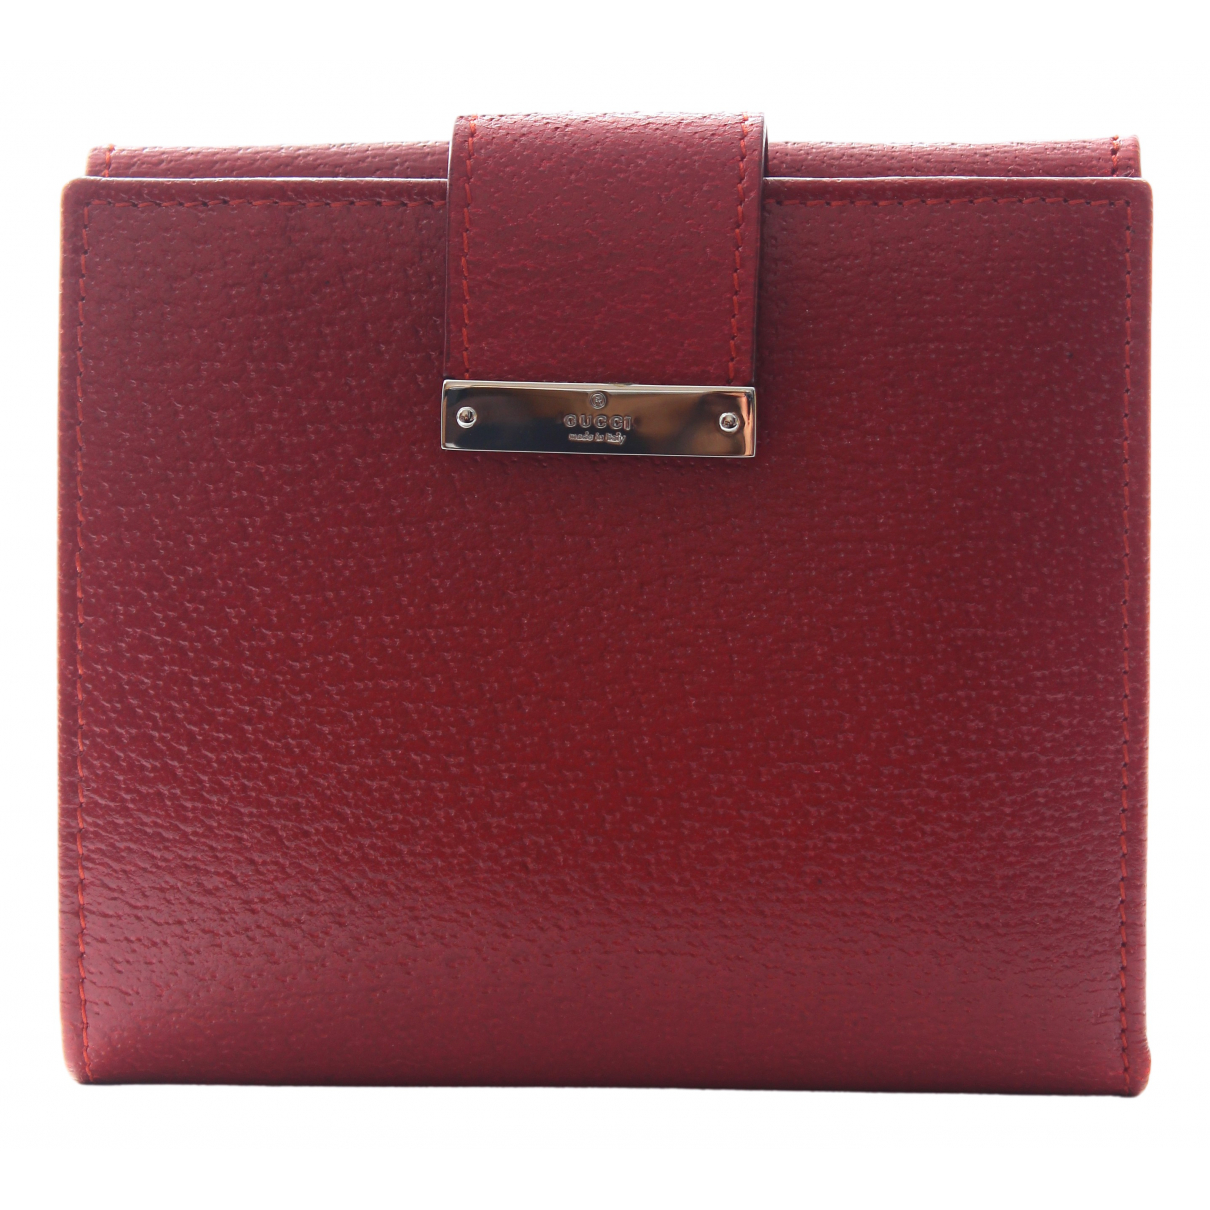 Gucci N Red Leather wallet for Women N